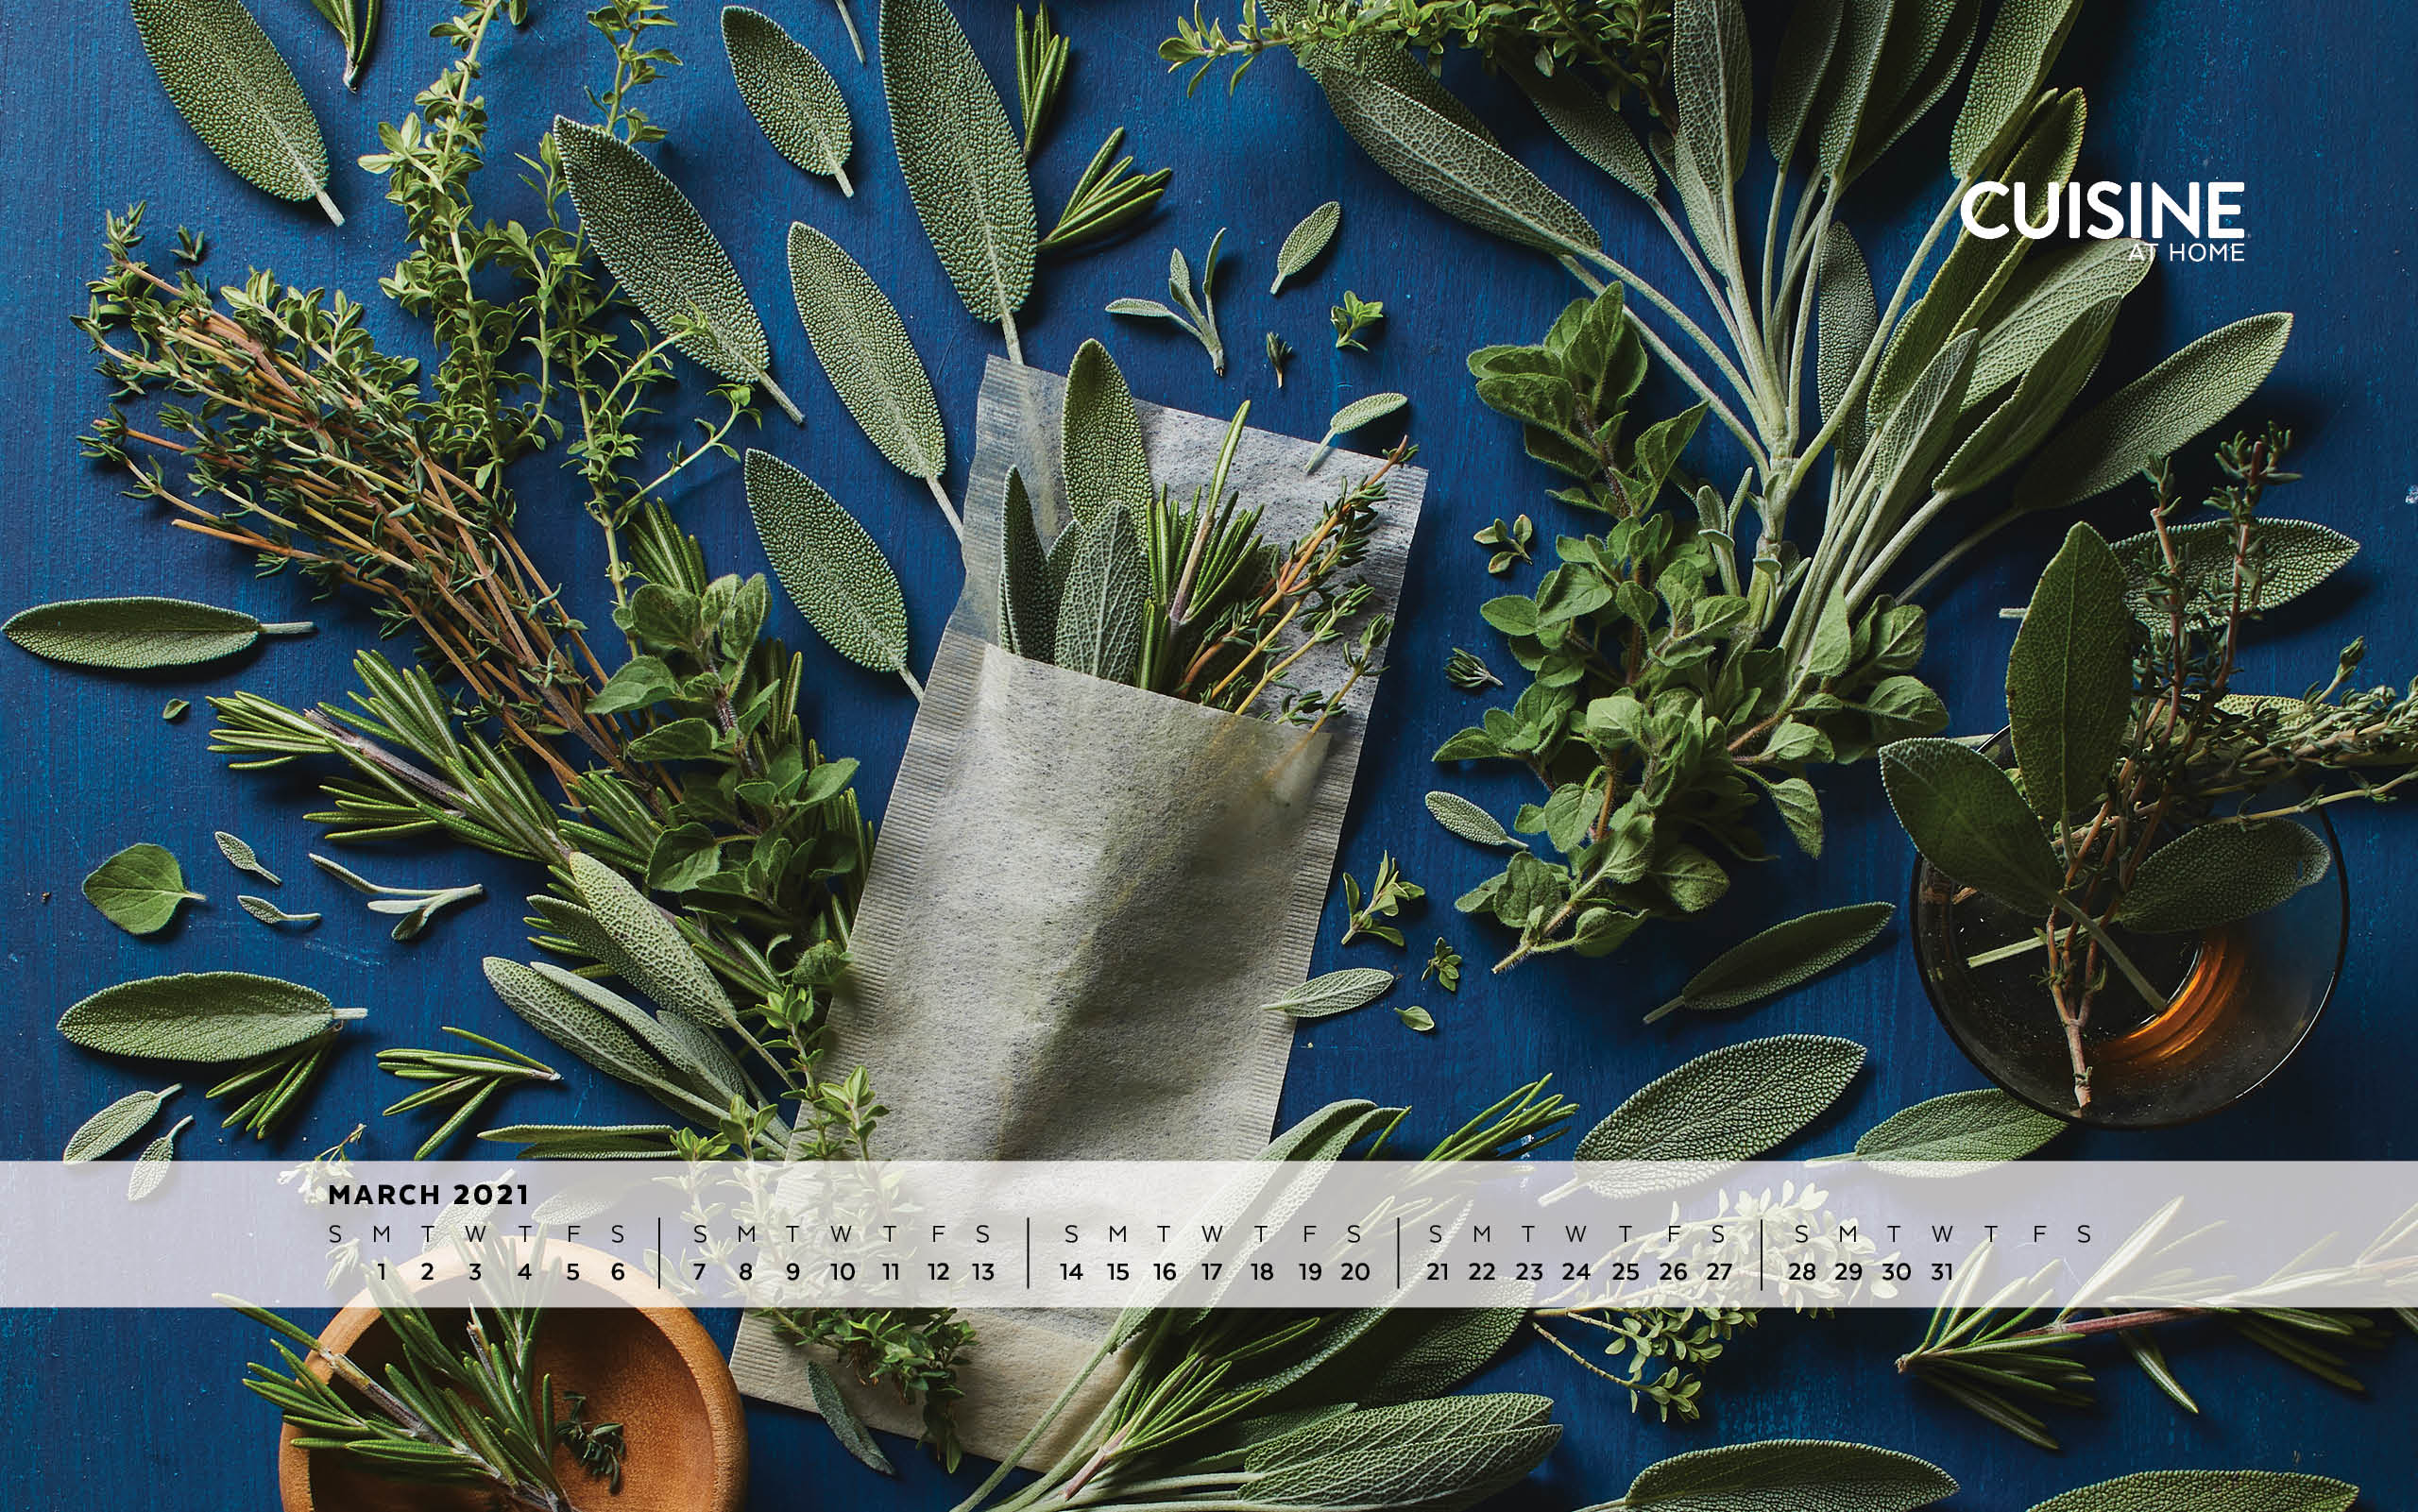 March  aesthetic desktop wallpaper with calendar ft herbs green plants gardening cooking food tea for iPhone or Android from Cuisine at Home